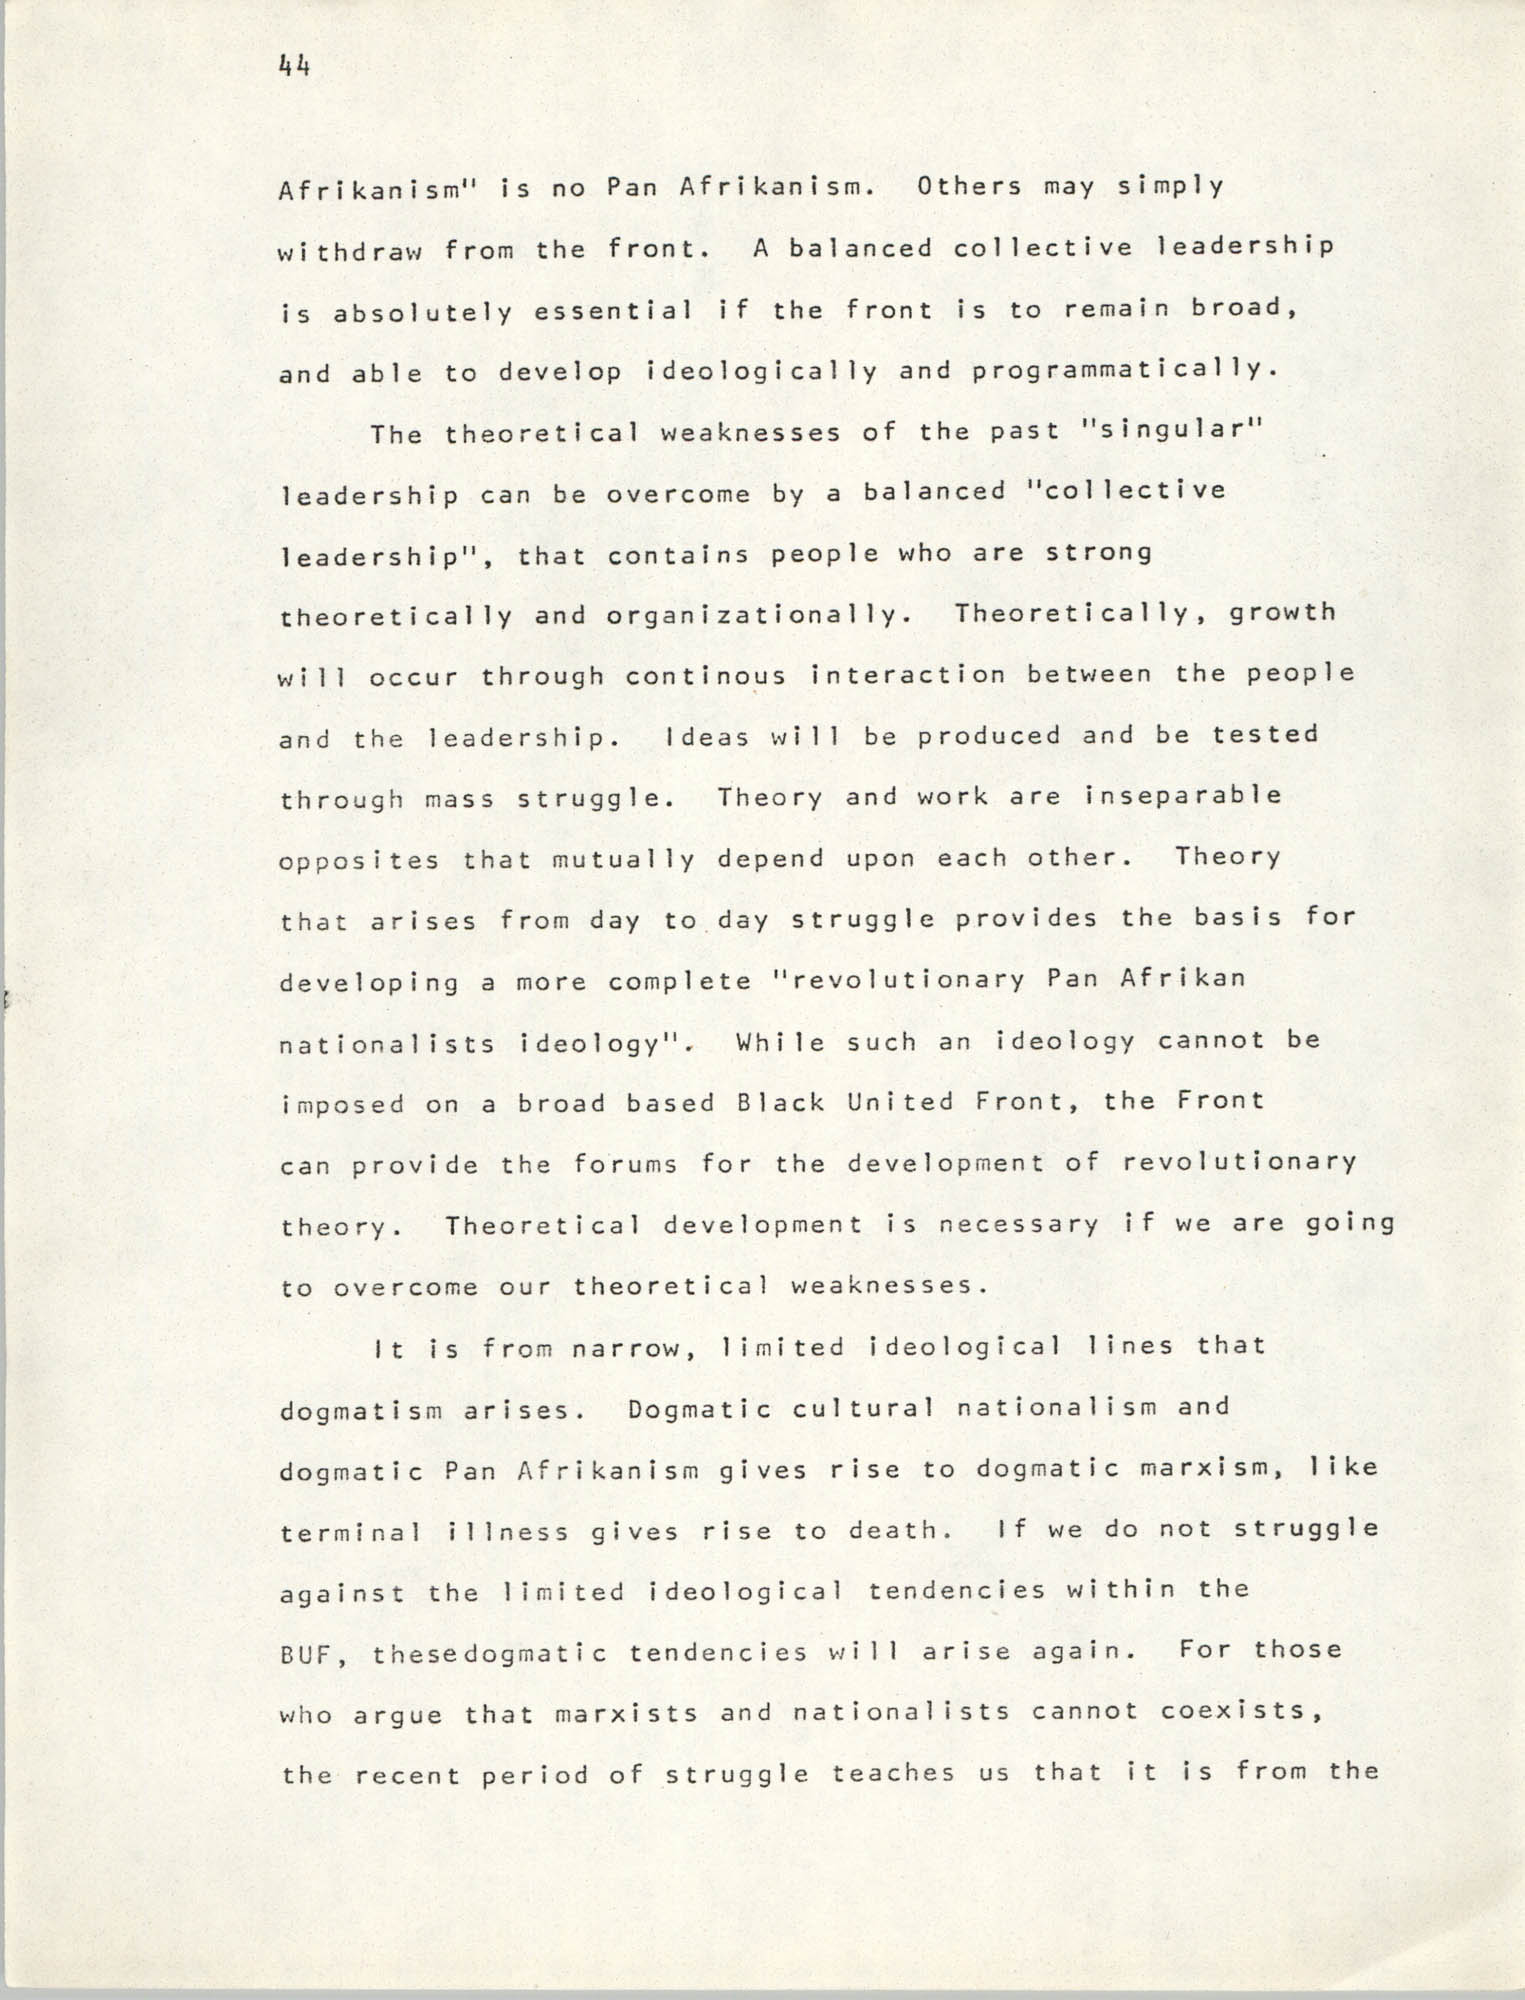 Pan-African Committee of the Black United Front, Page 44